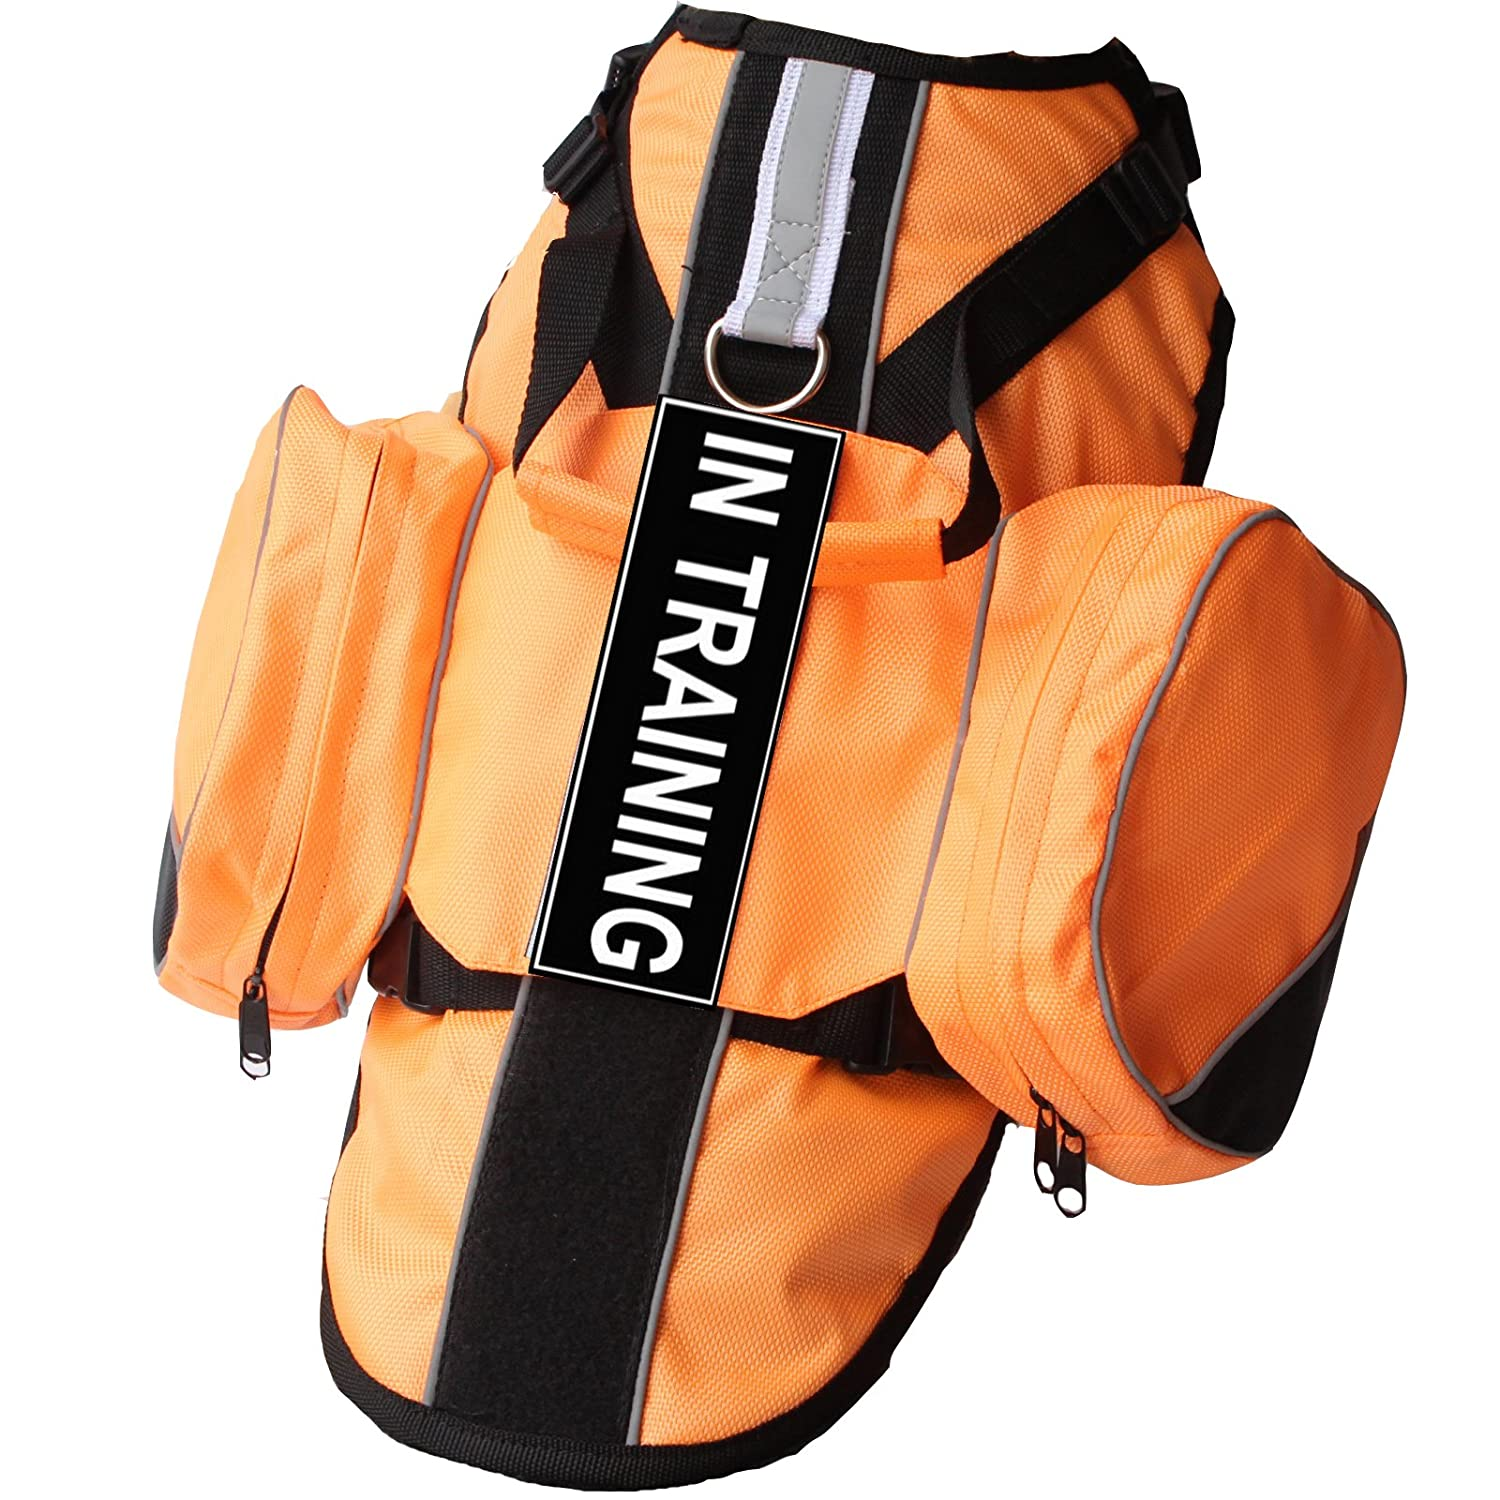 orange S orange S haoyueer Service Dog Vest Harness Chest Plate Removable in Training Label Patches & Side Saddle Bags(orange,S)